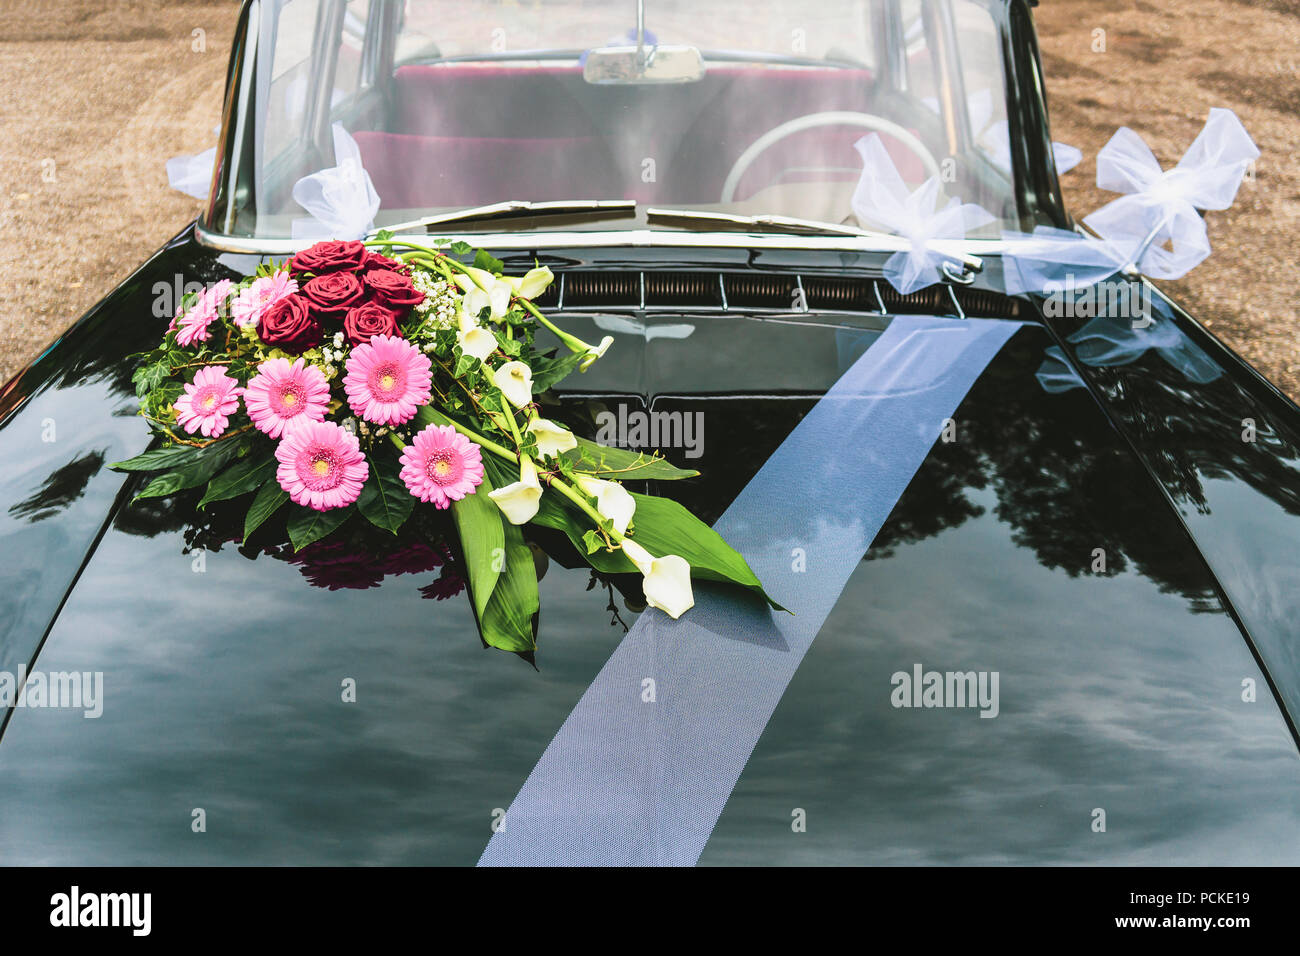 Vintage Black Car Decorated With Bouqet Bunch Of Flowers And White